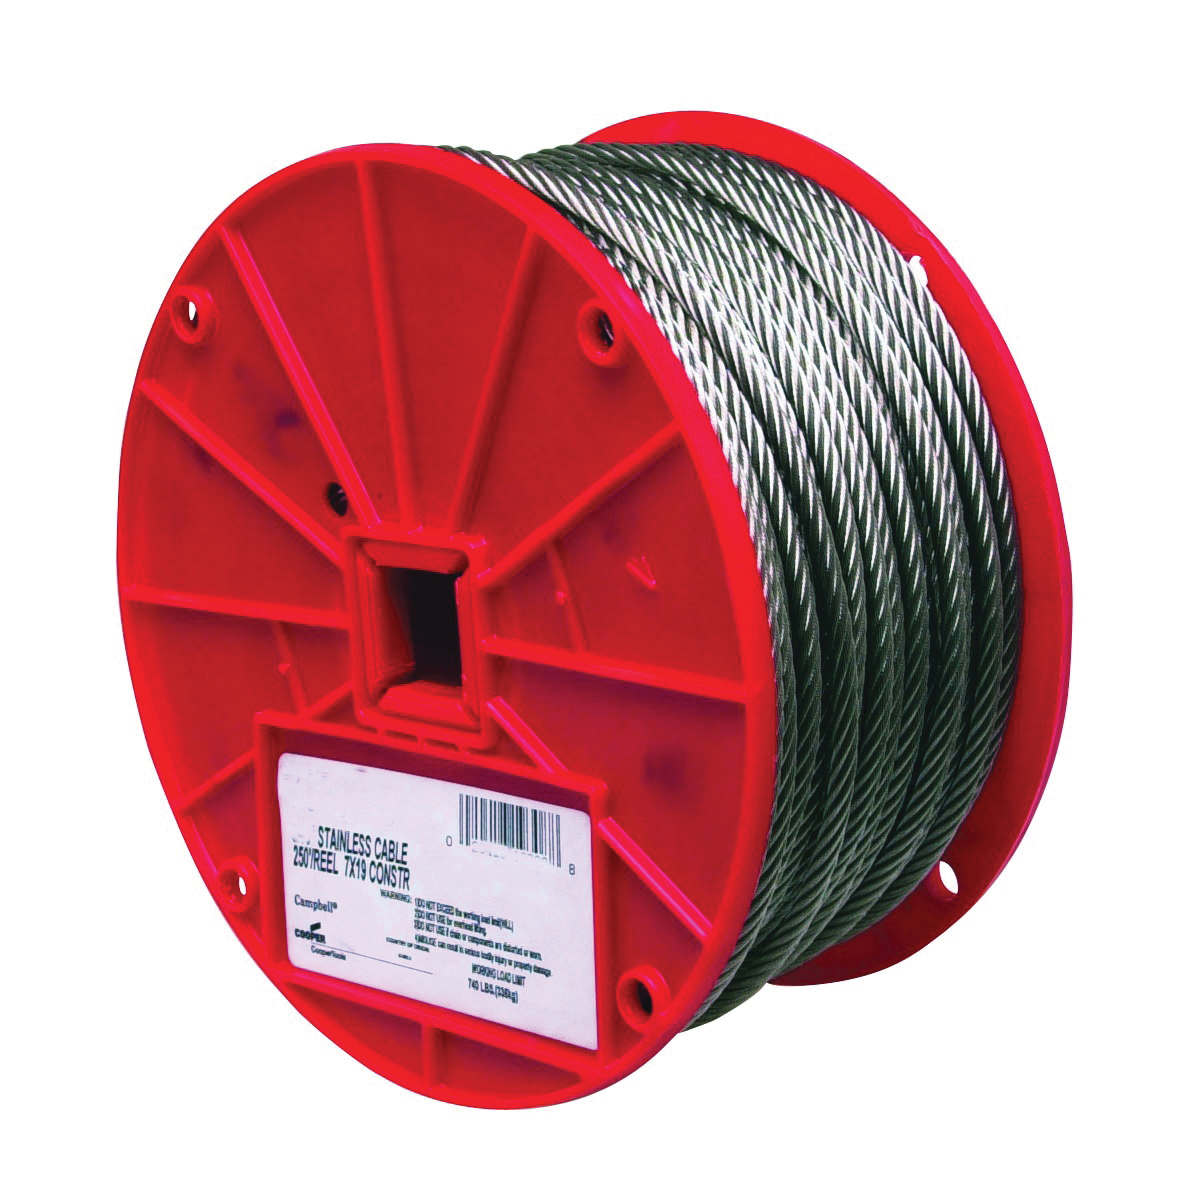 Picture of Campbell 7000426 High-Strength Cable, 1/8 in Dia, 250 ft L, 340 lb Working Load, Stainless Steel, Reel